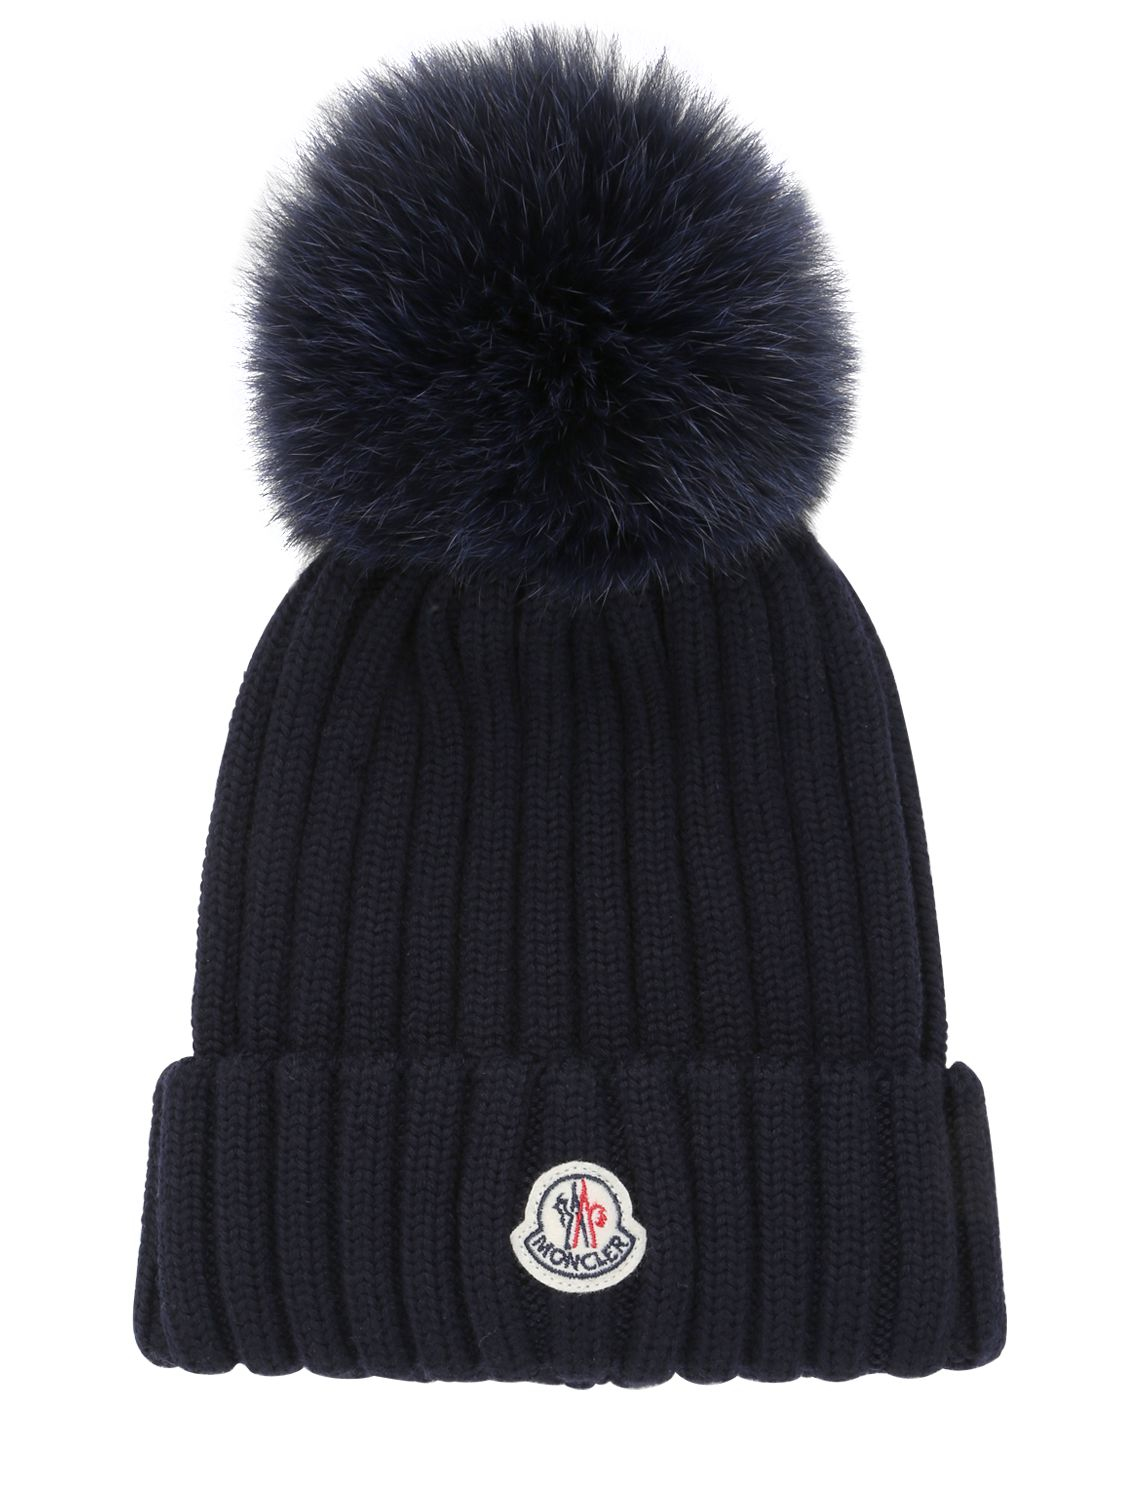 Moncler Wool Beanie Hat With Fox Fur Pompom in Blue for Men - Lyst f6ae4034d71